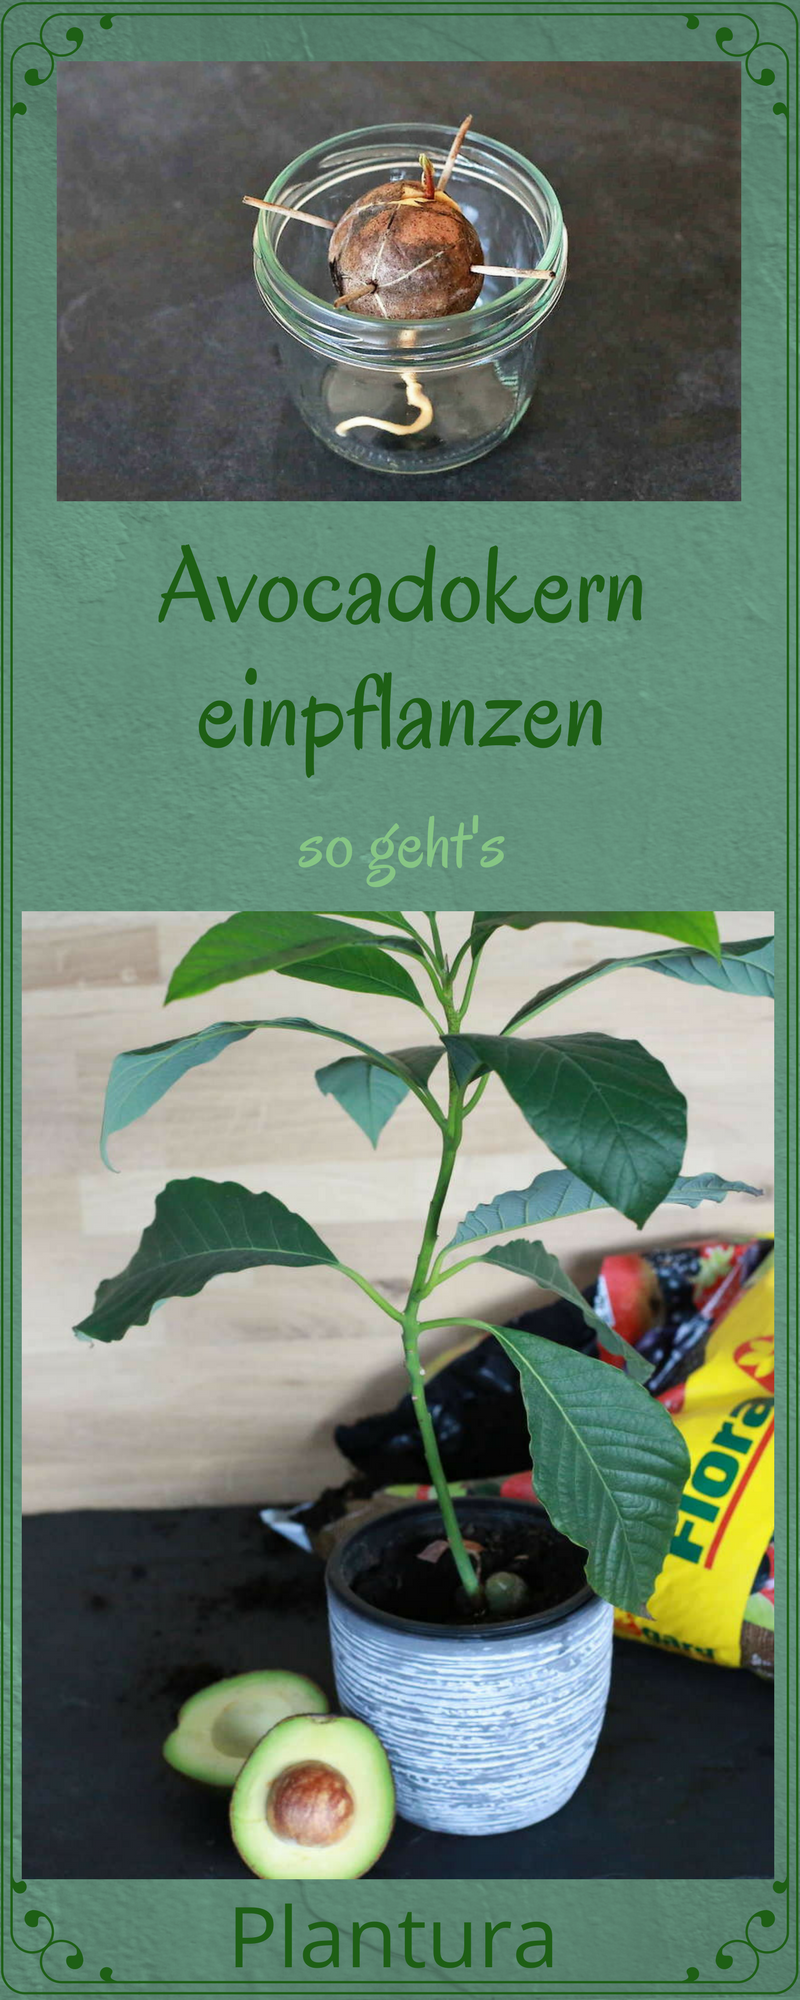 avocadokern einpflanzen vermehrung anbau leichtgemacht beautiful ideas garten pflanzen. Black Bedroom Furniture Sets. Home Design Ideas